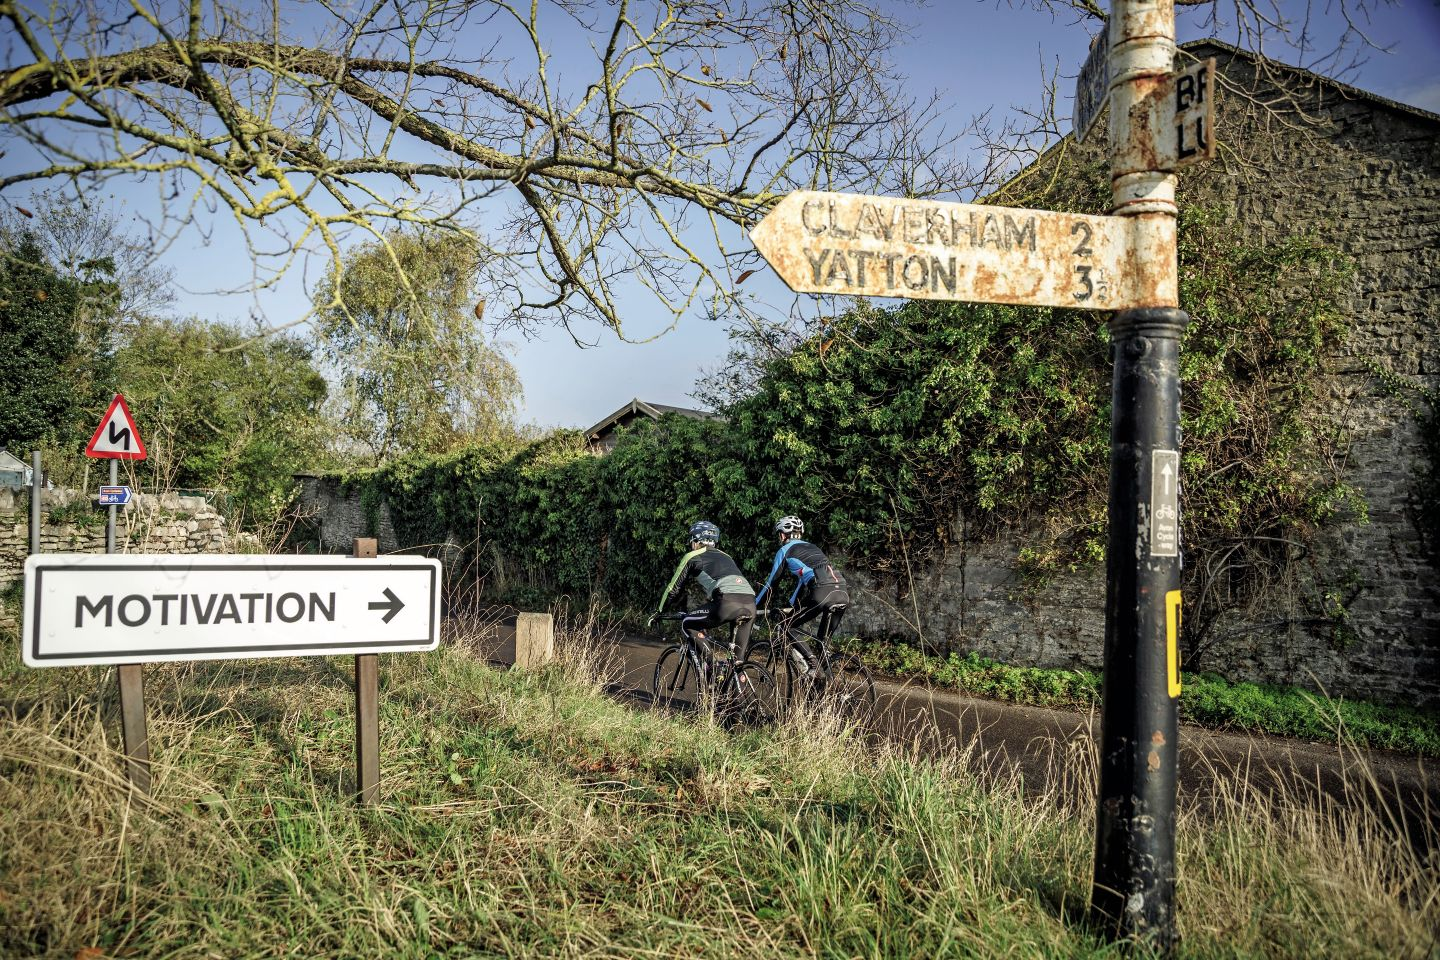 Two cyclists ride past direction signs in Somerset